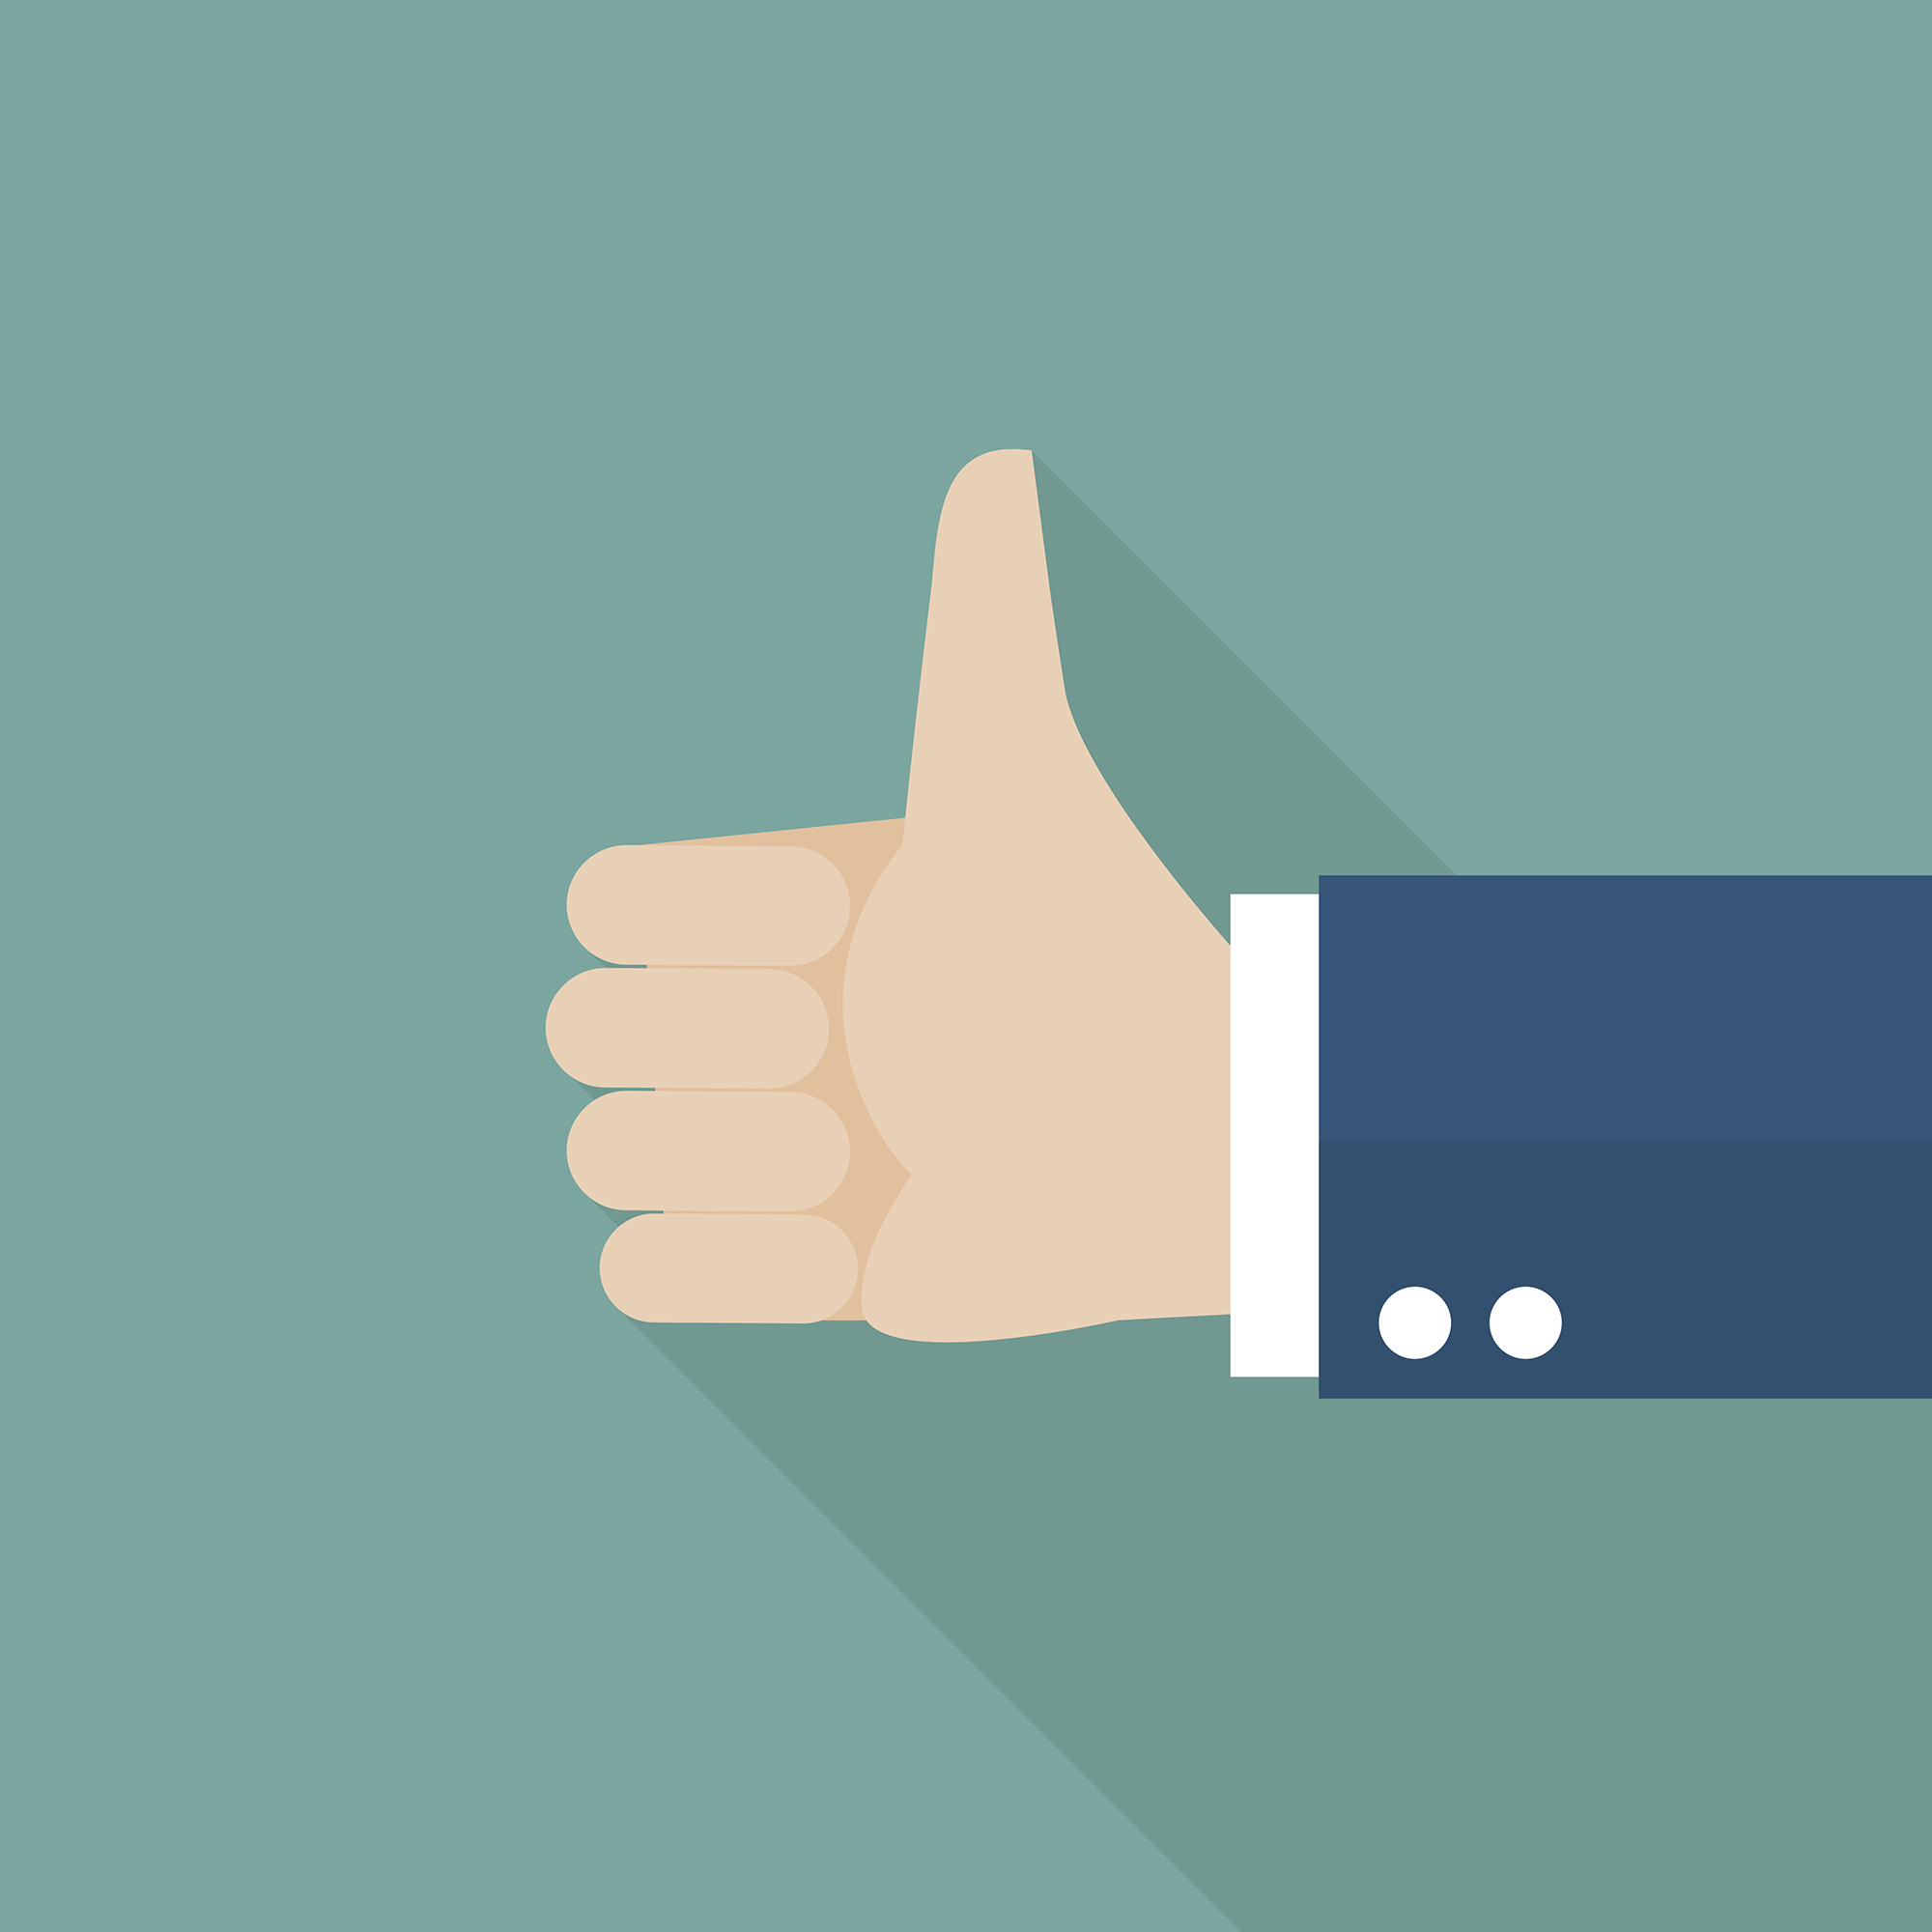 Thumbs up for embedded integration